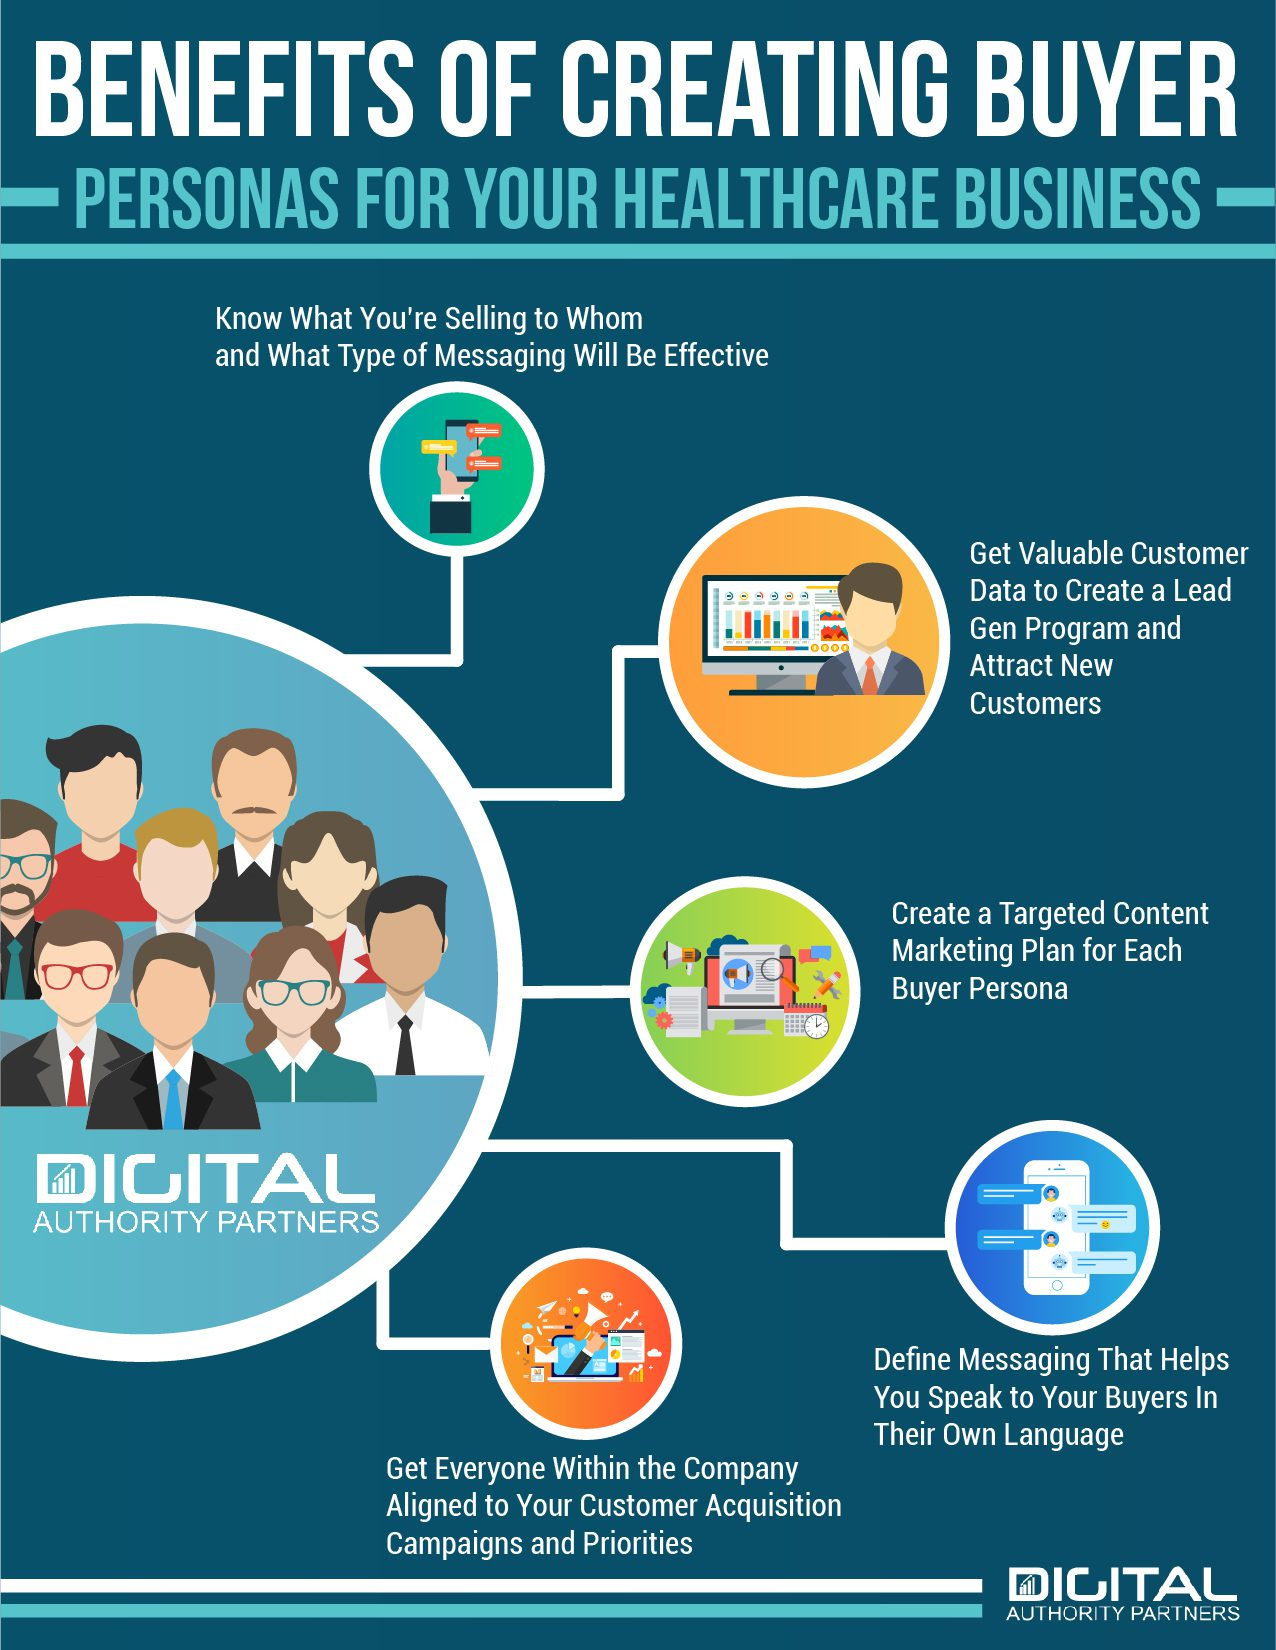 Infographic: The benefits of creating buyer personas for your healthcare business